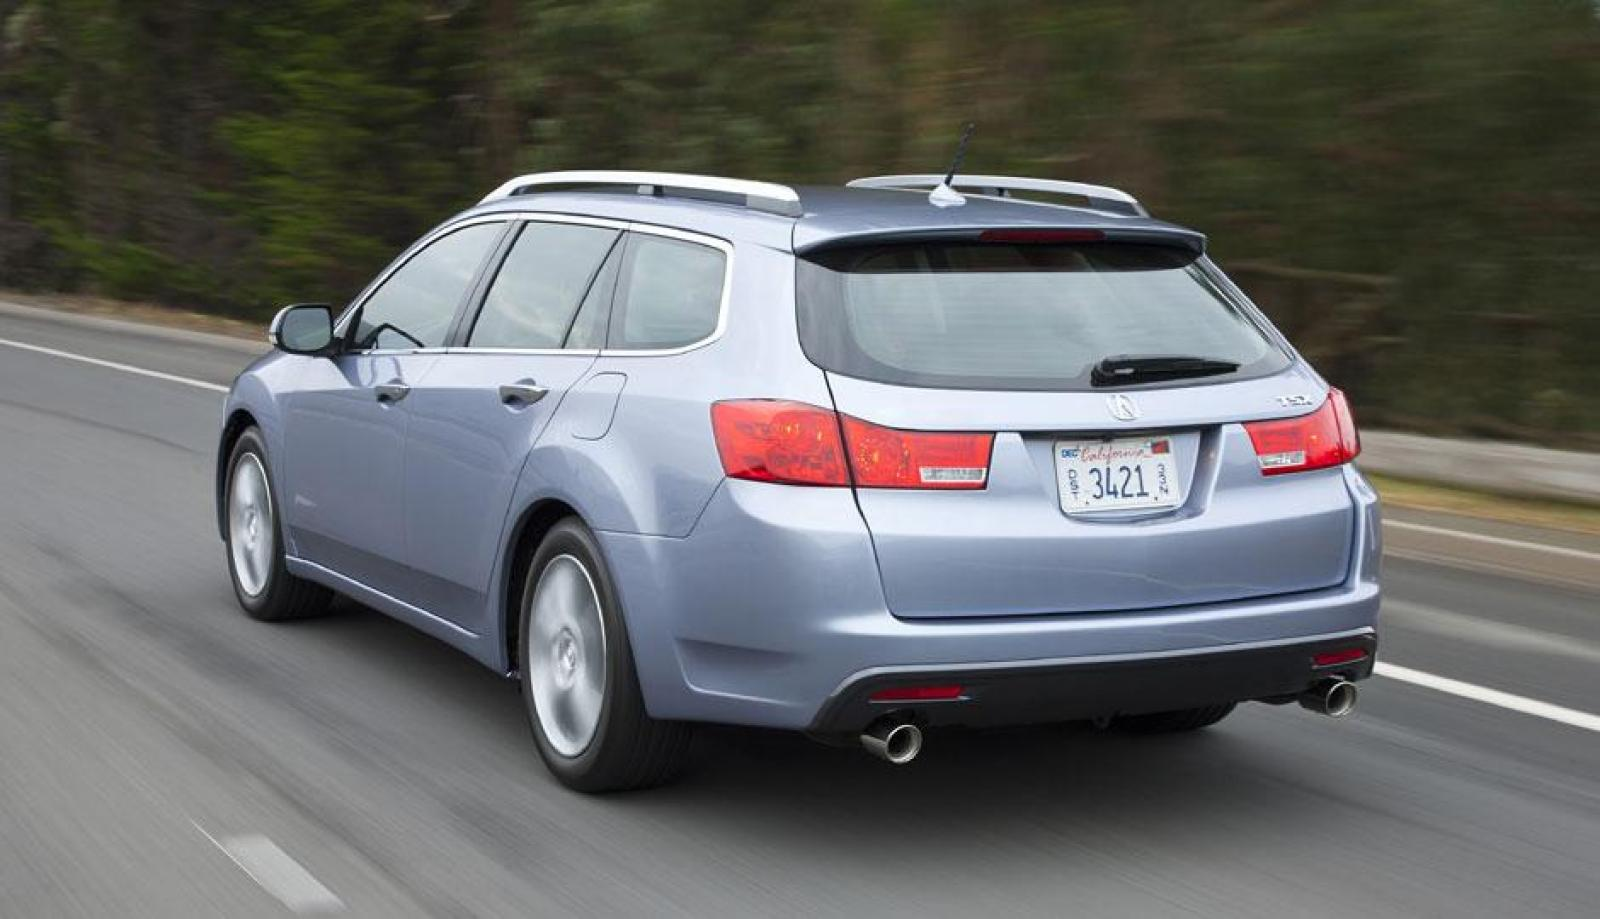 Acura TSX Sport Wagon Information And Photos ZombieDrive - Acura tsx sport wagon accessories